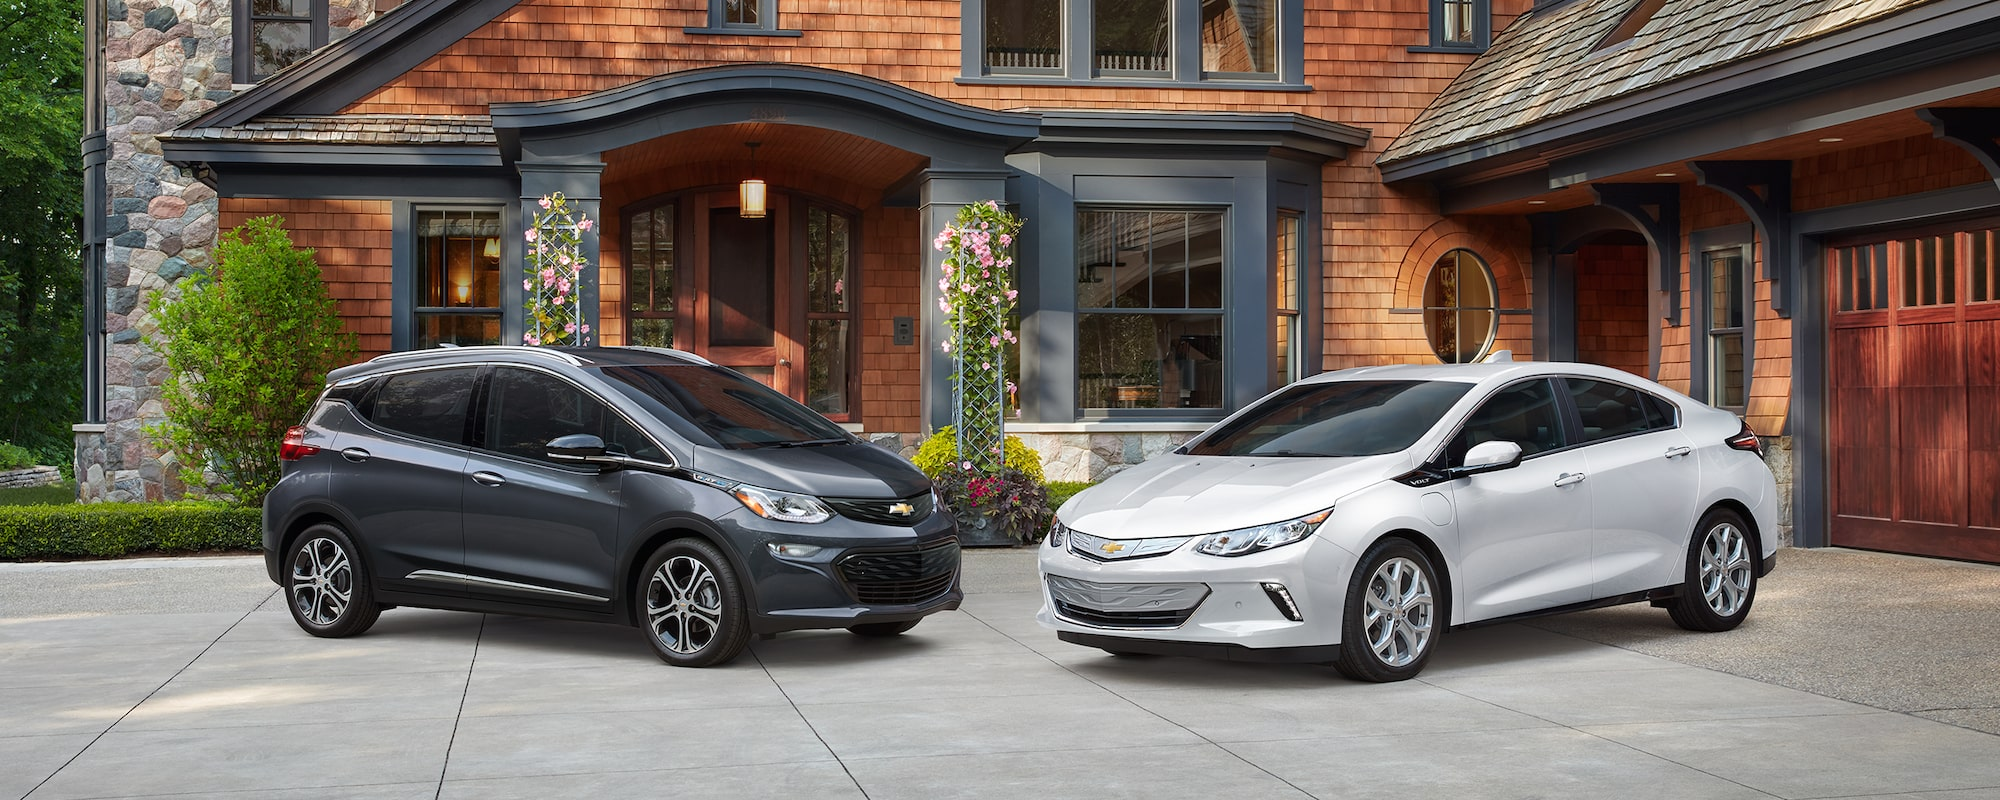 chevy electric cars lineup electric vehicle plug in hybrid rh chevrolet com